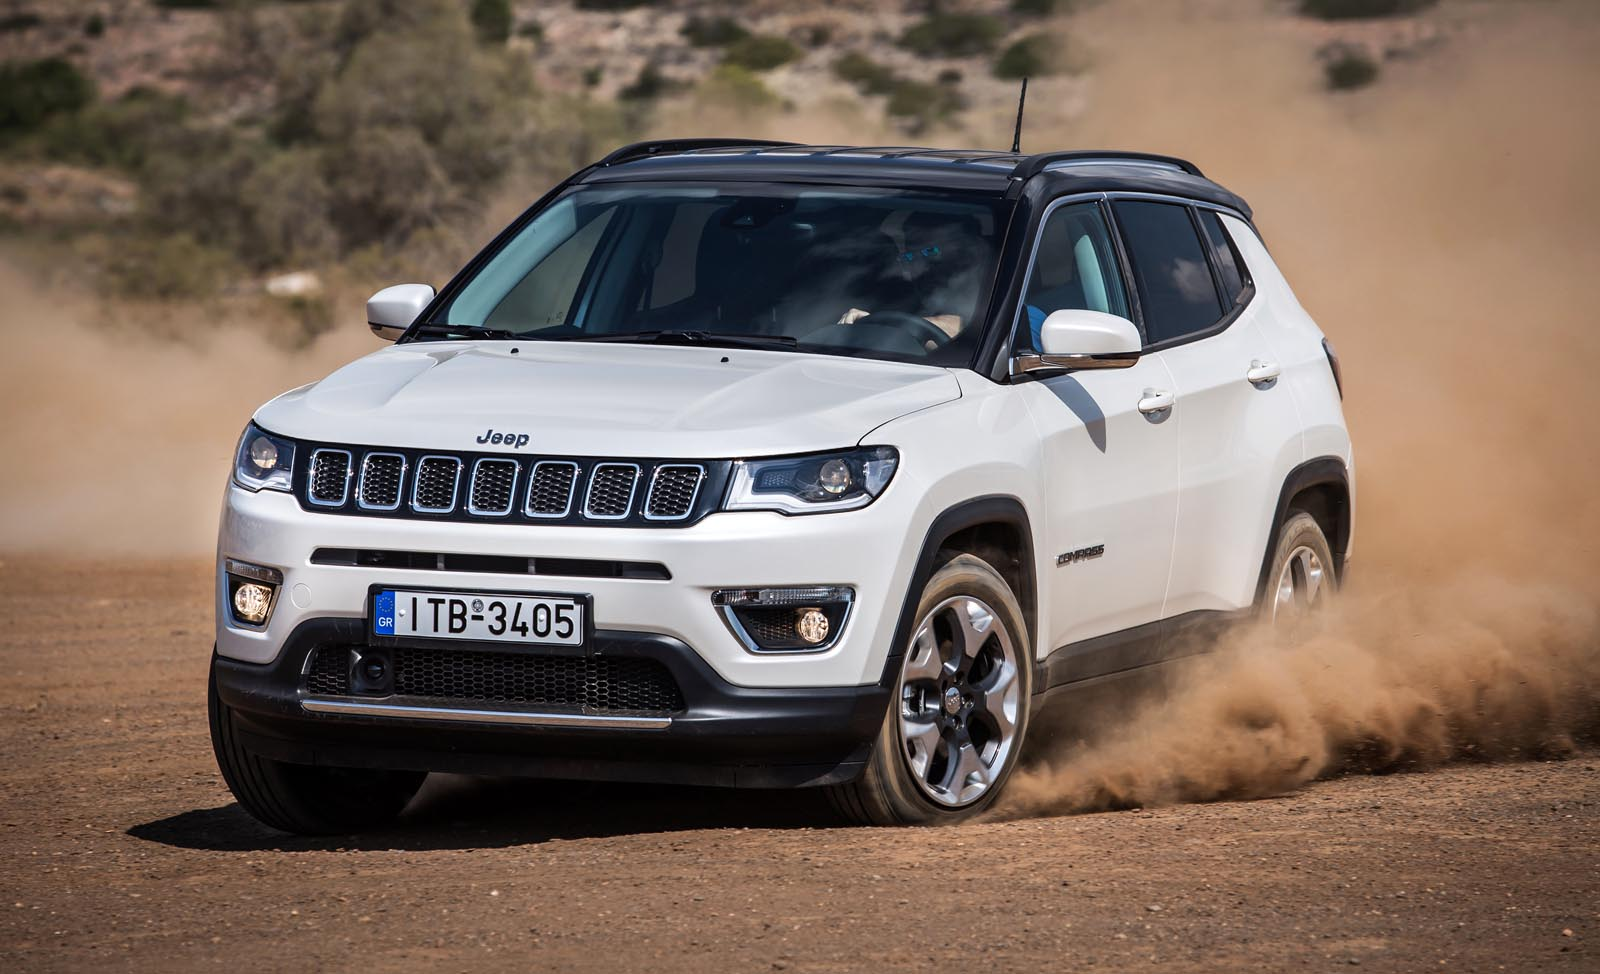 Photo of Jeep Compass 2.0 Multijet AWD Auto [test drive]